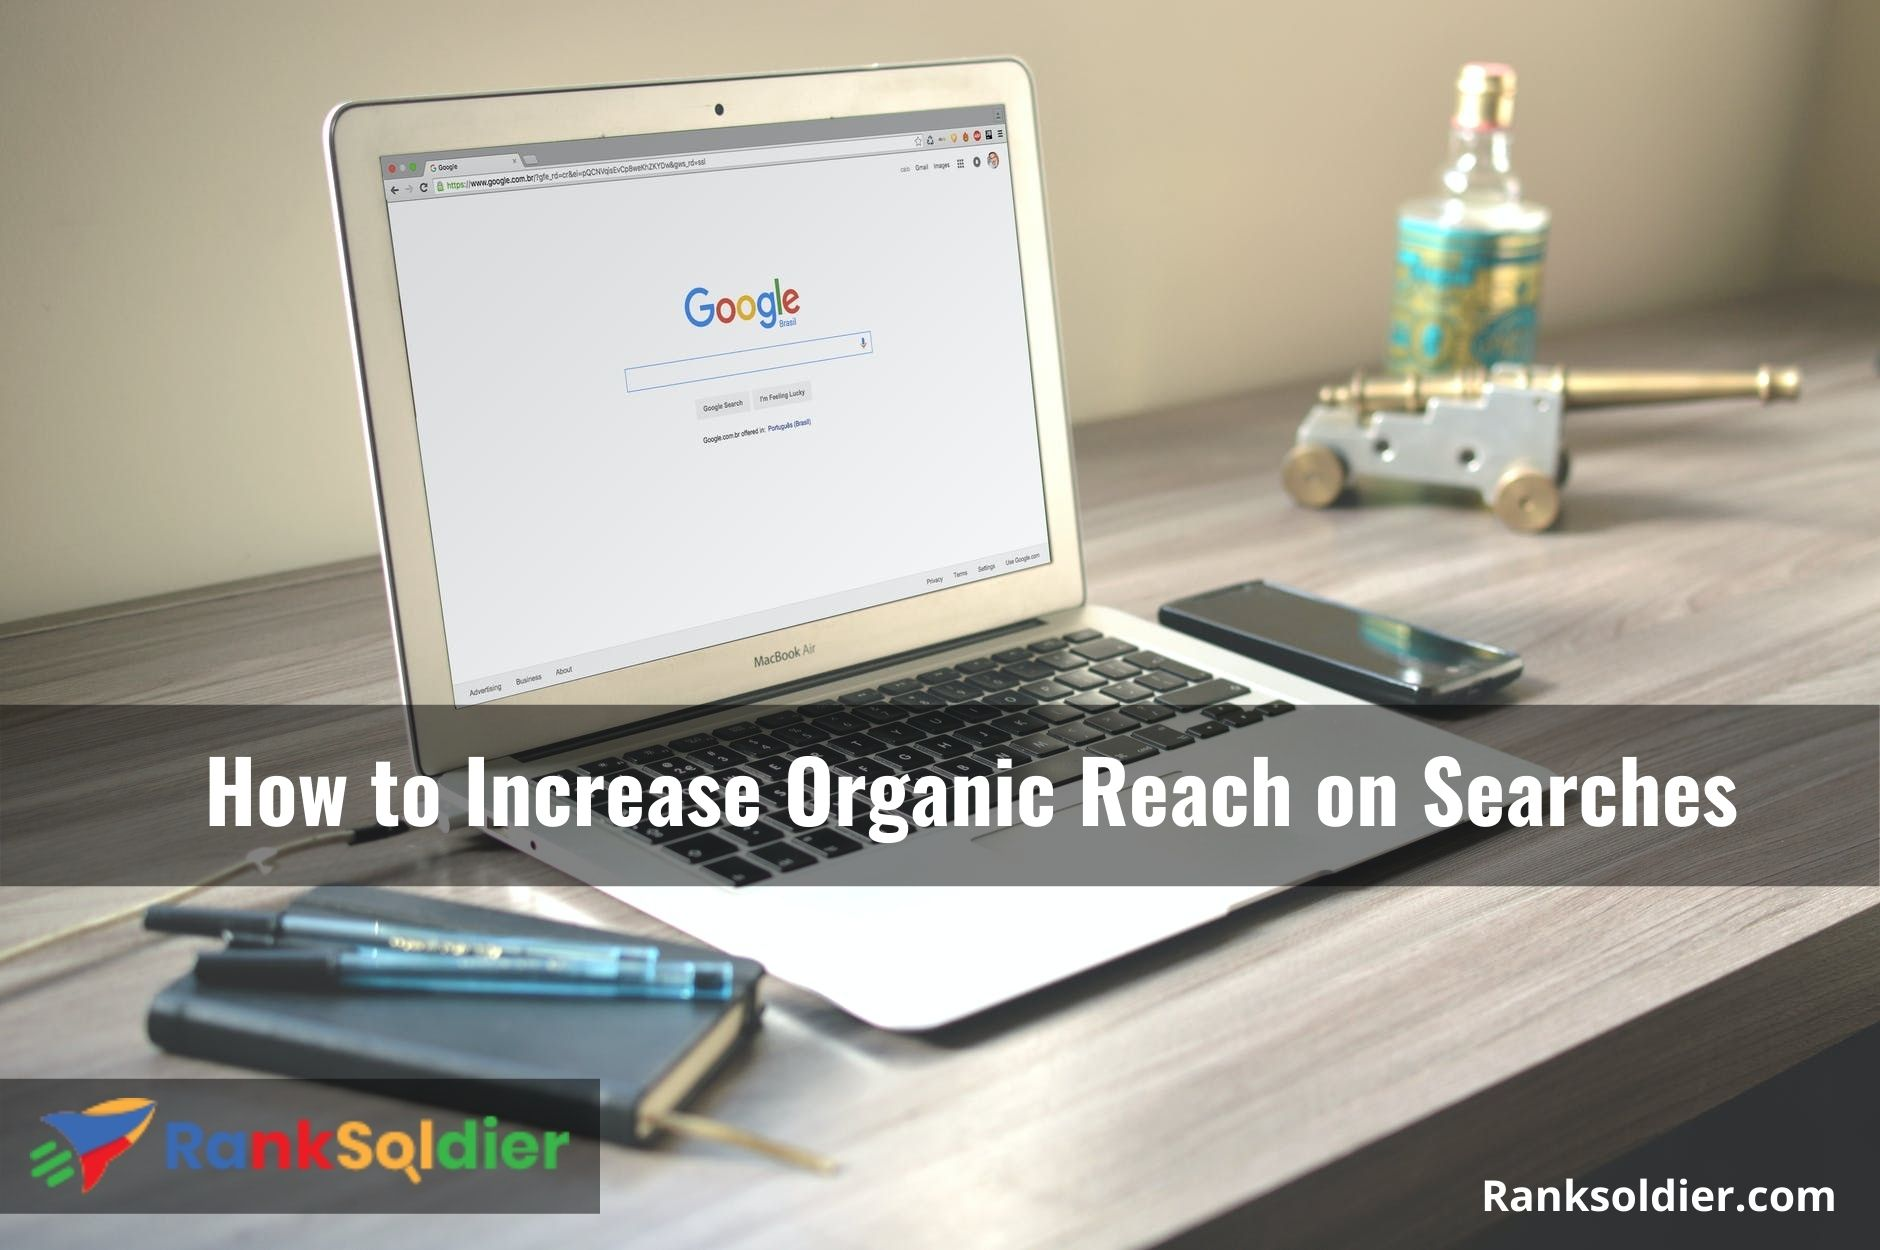 How to Increase Organic Reach on Searches